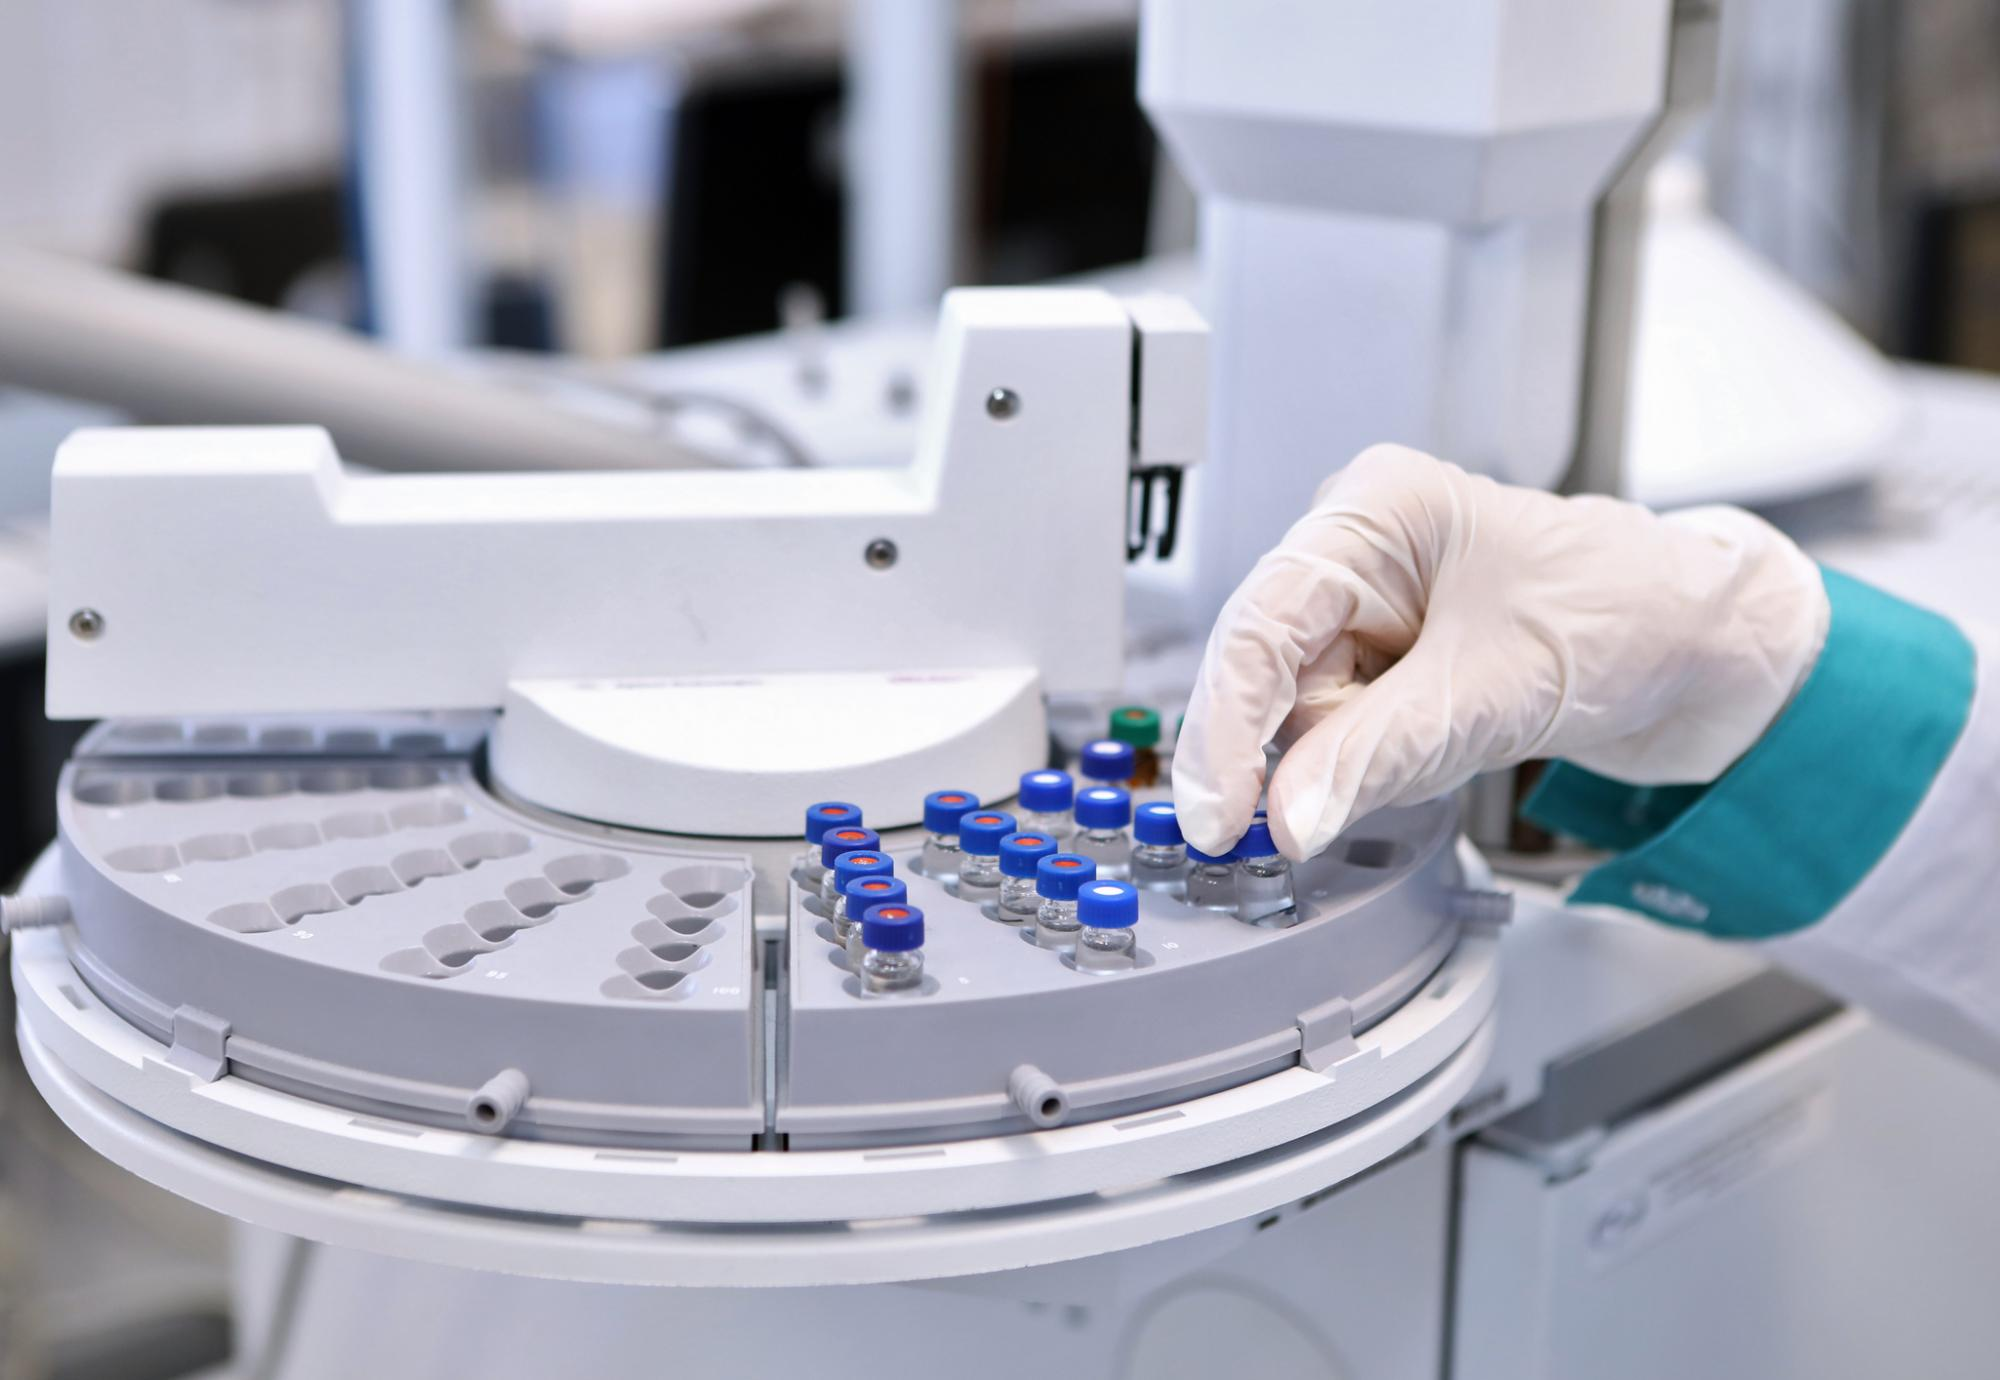 Vaccine manufacturing equipment in operation